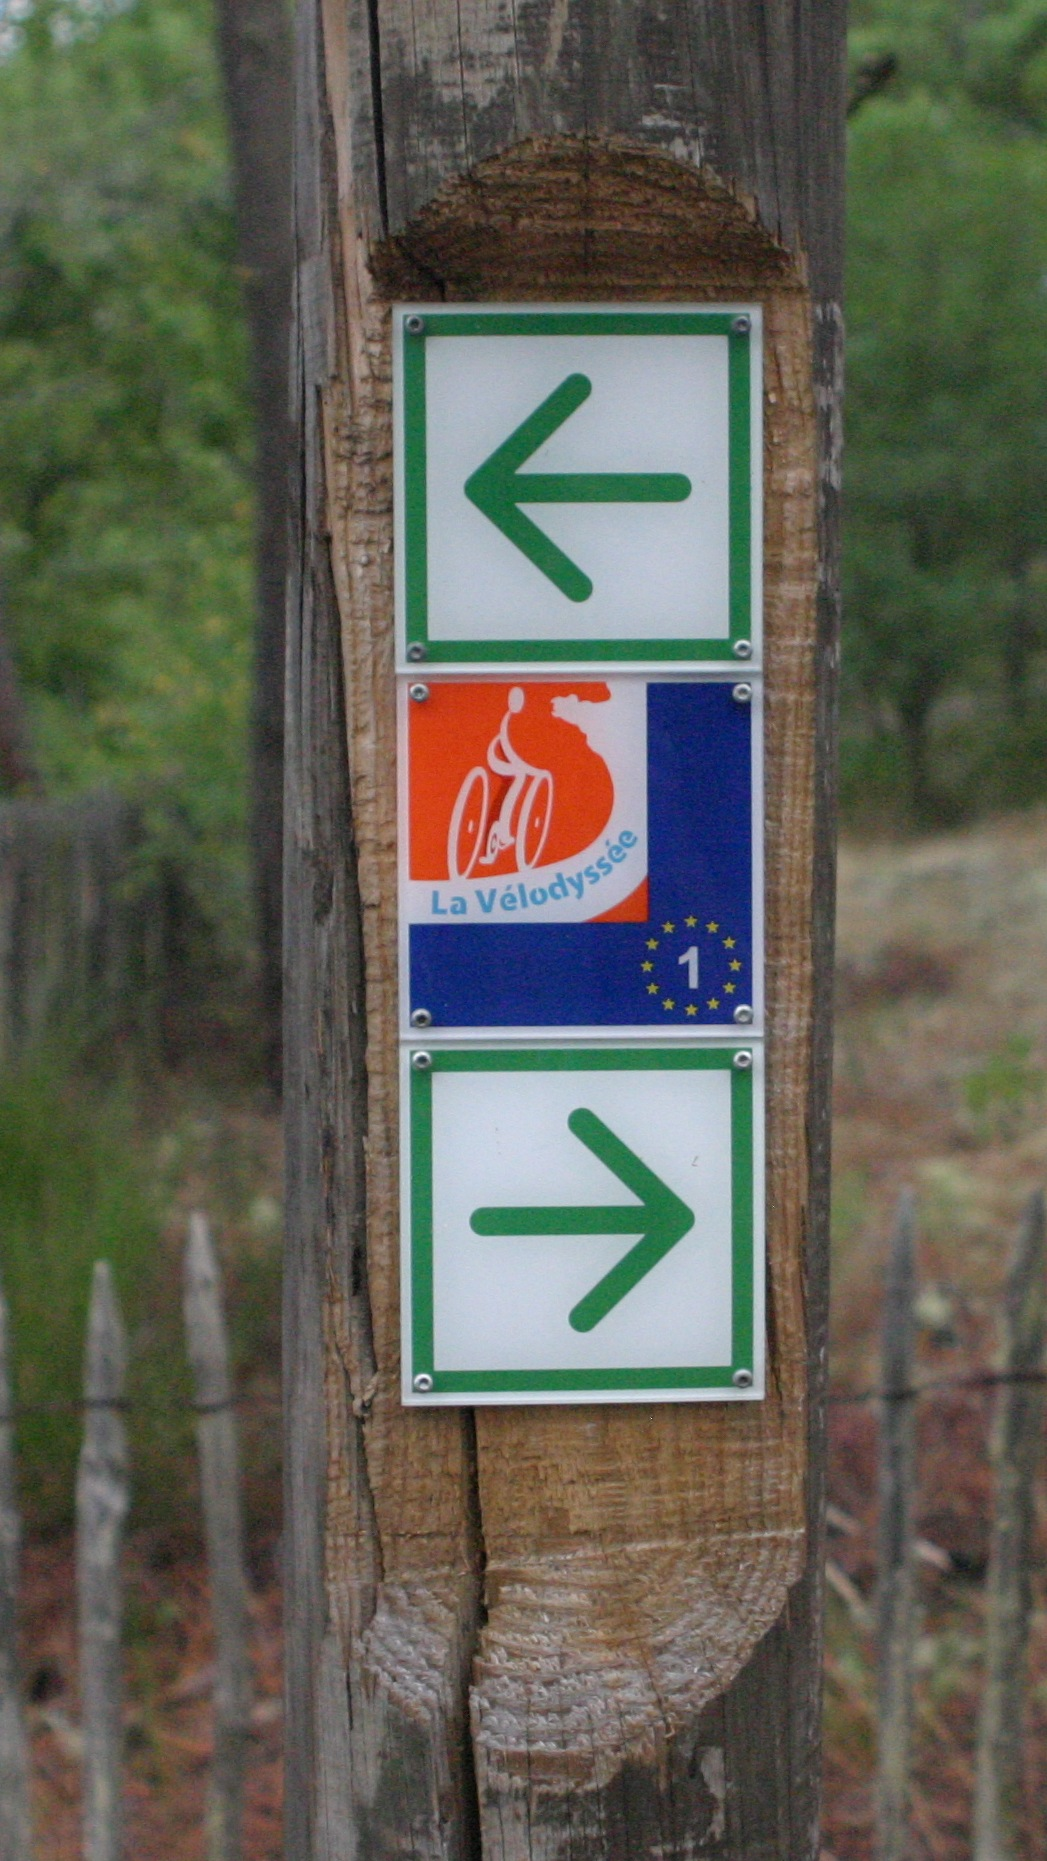 Signage for the Eurovelo 1 La Vélodyssée bike route that follows the Atlantic Coast